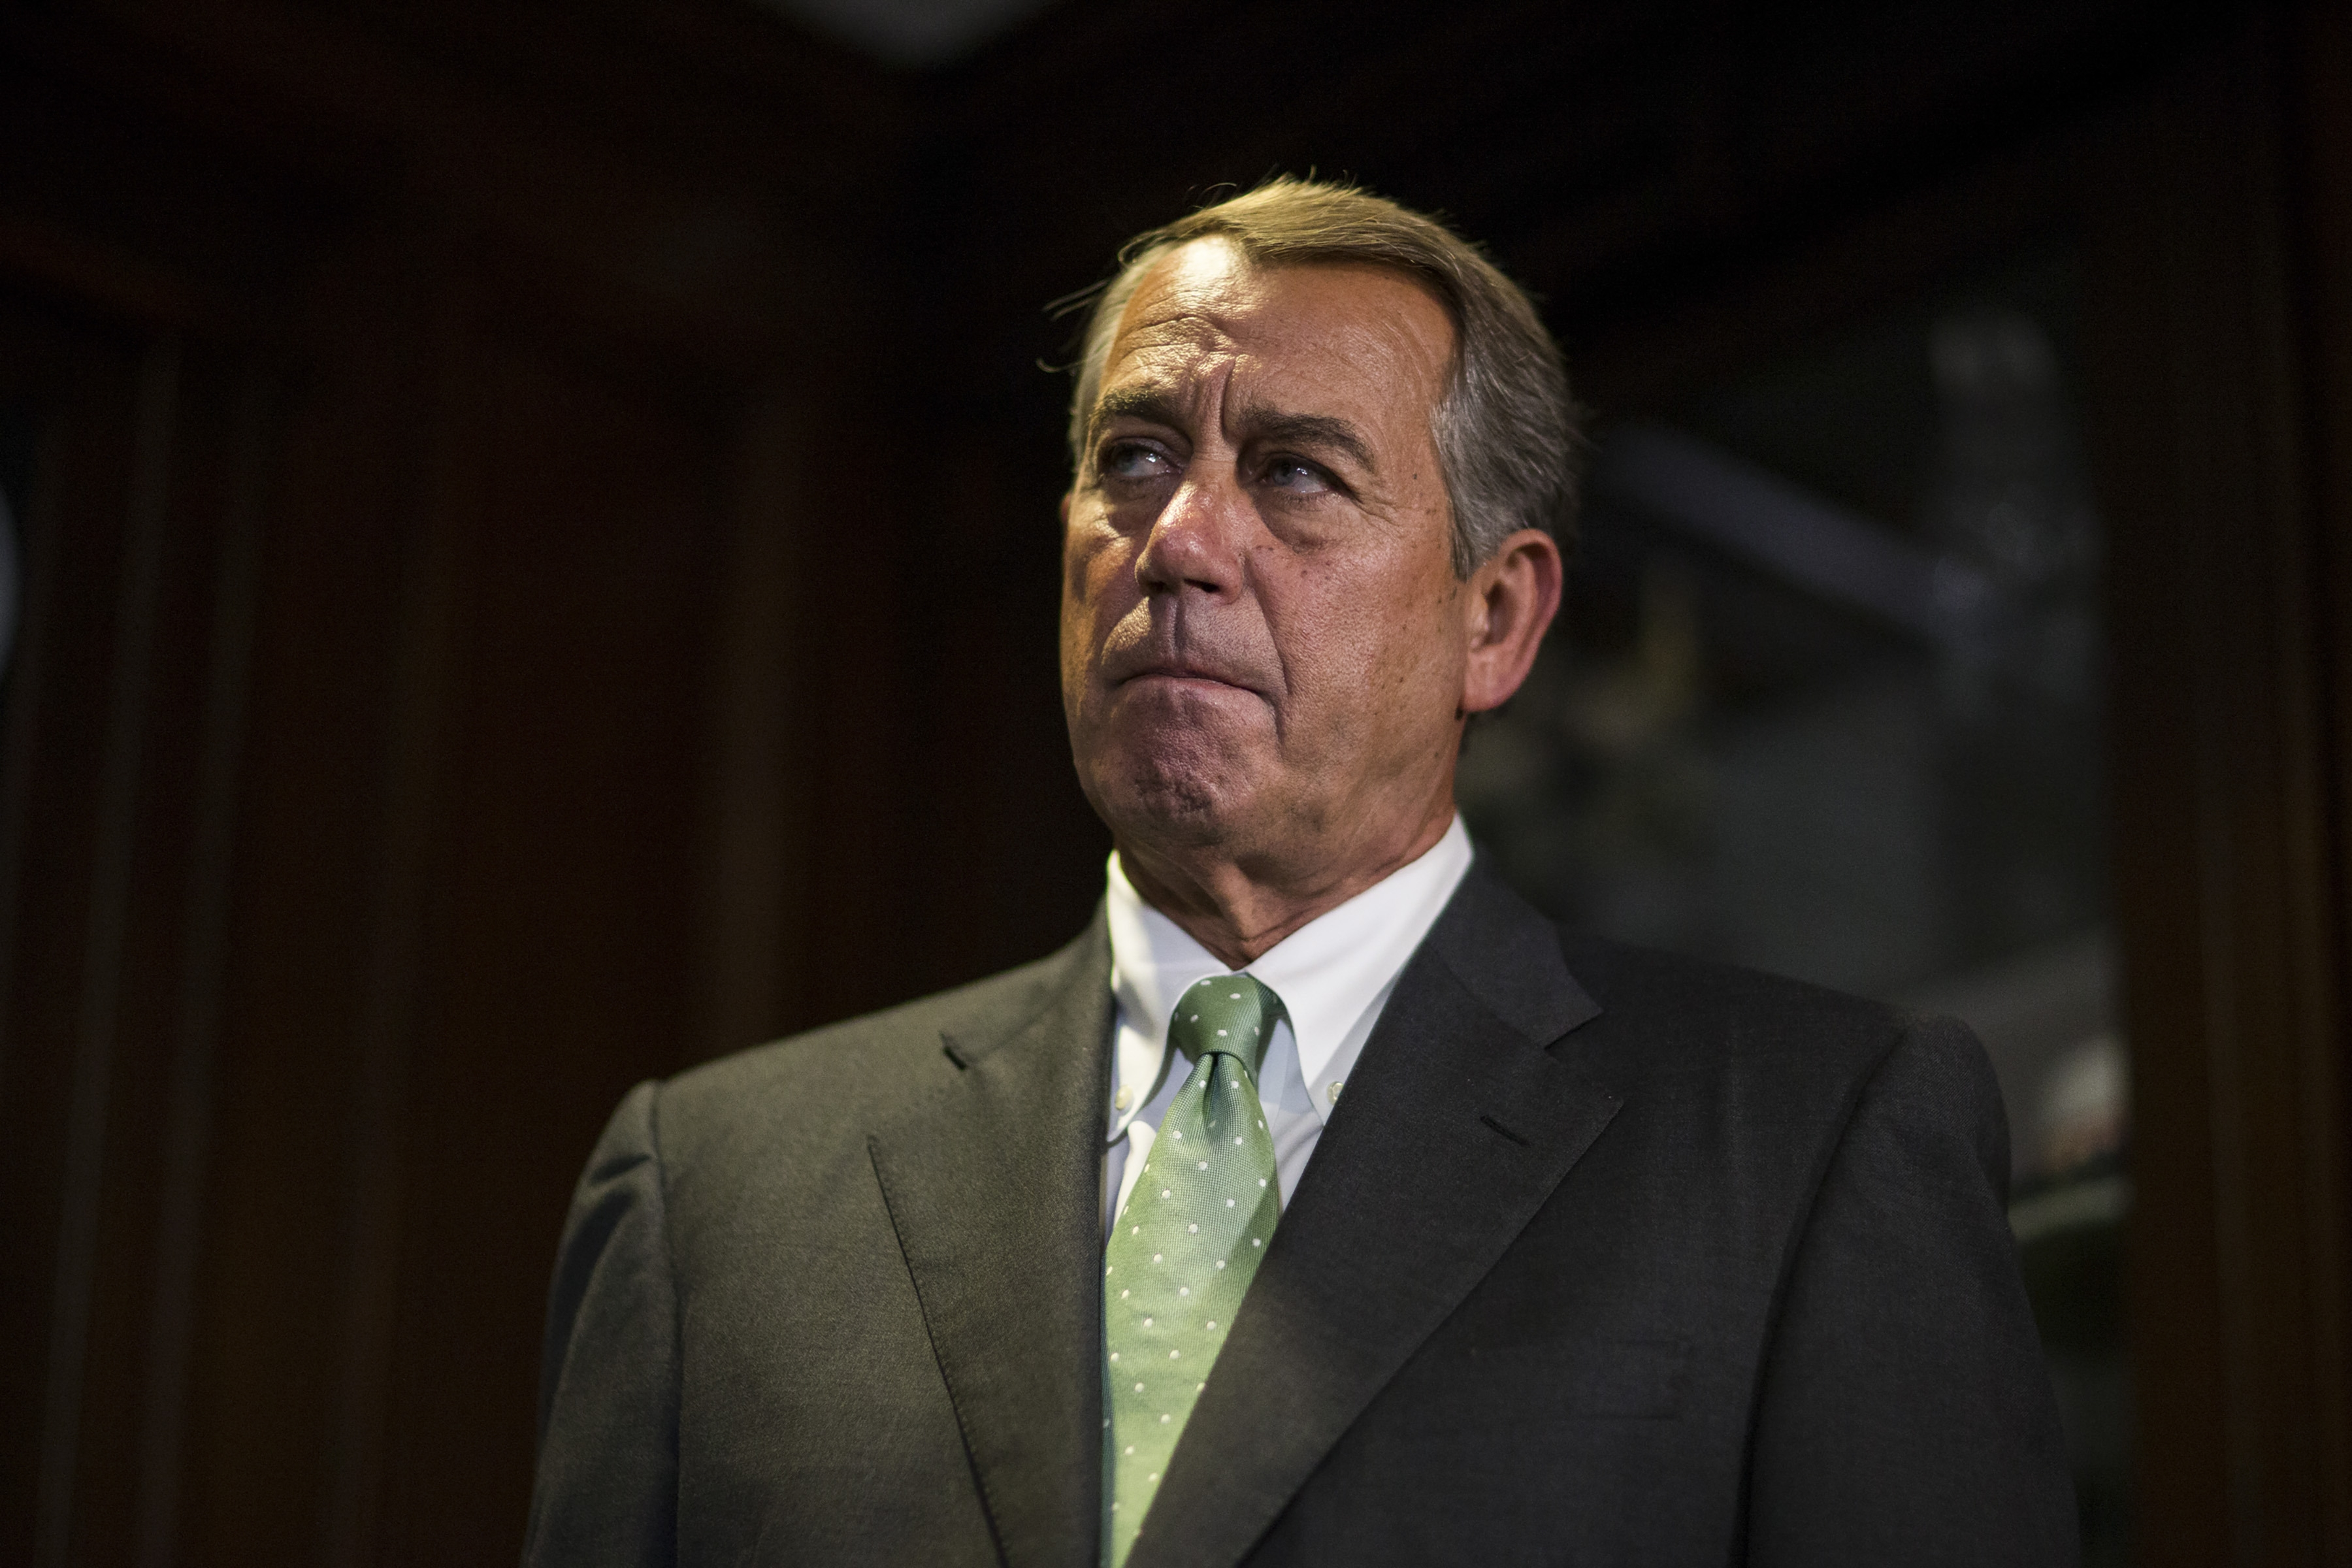 House Speaker John Boehner was under extreme pressure from the right wing of his conference over whether to defund Planned Parenthood in a bill to keep the government open. (New York Times file photo)